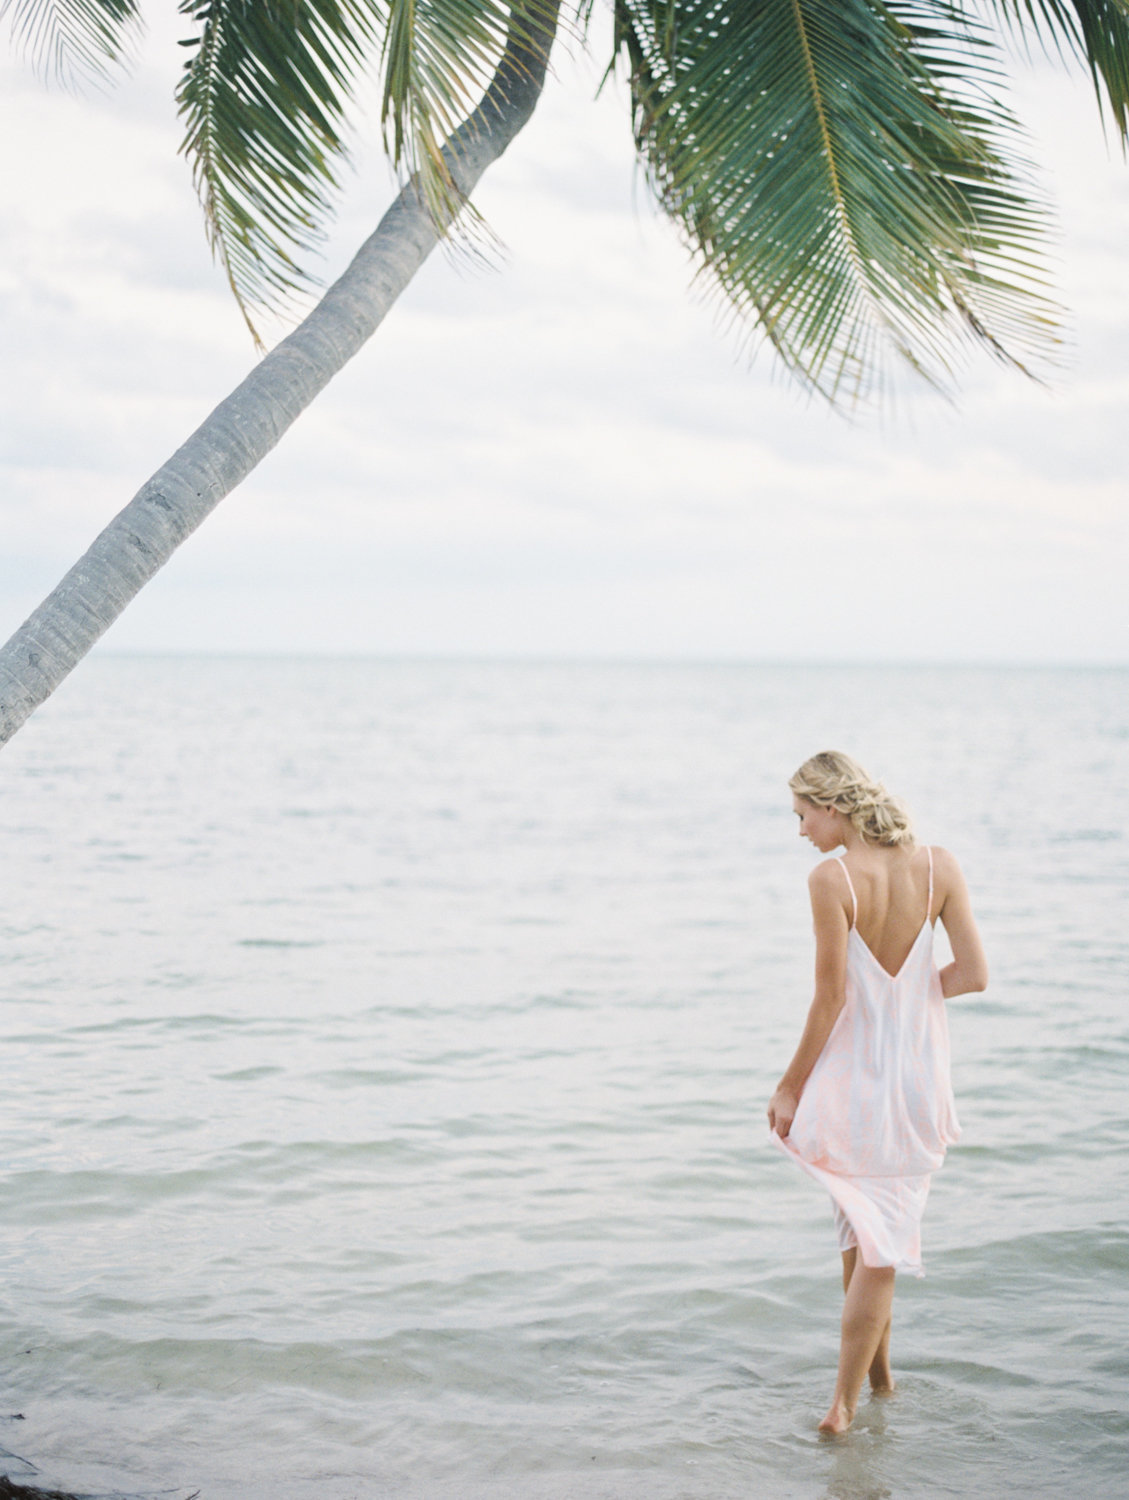 island-elopement-destination-wedding-photographer-melanie-gabrielle-photography-0144